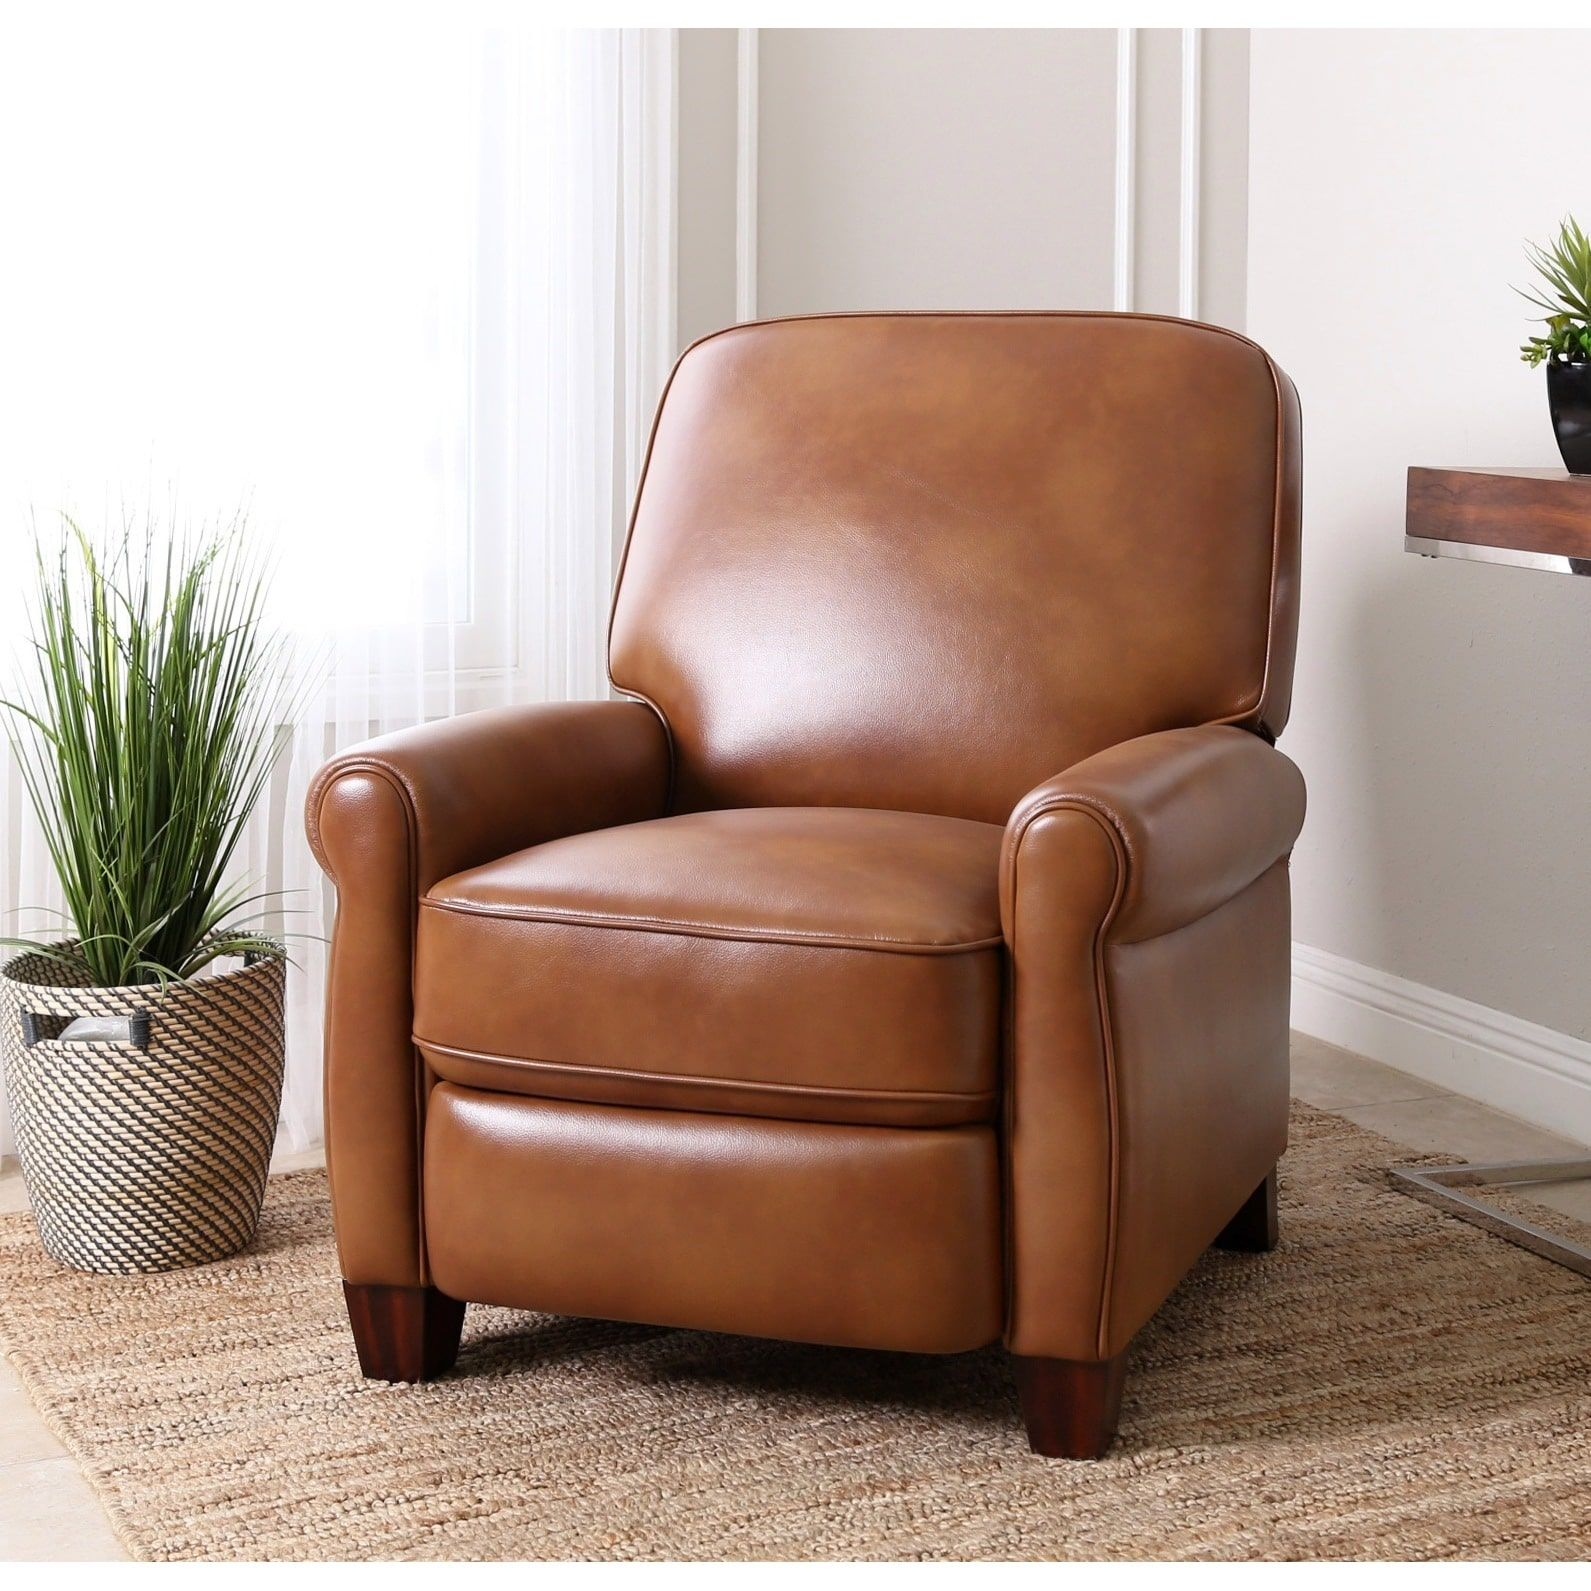 Recliners lounge comfortably in one of these recliners or rocker chairs these recliners allow